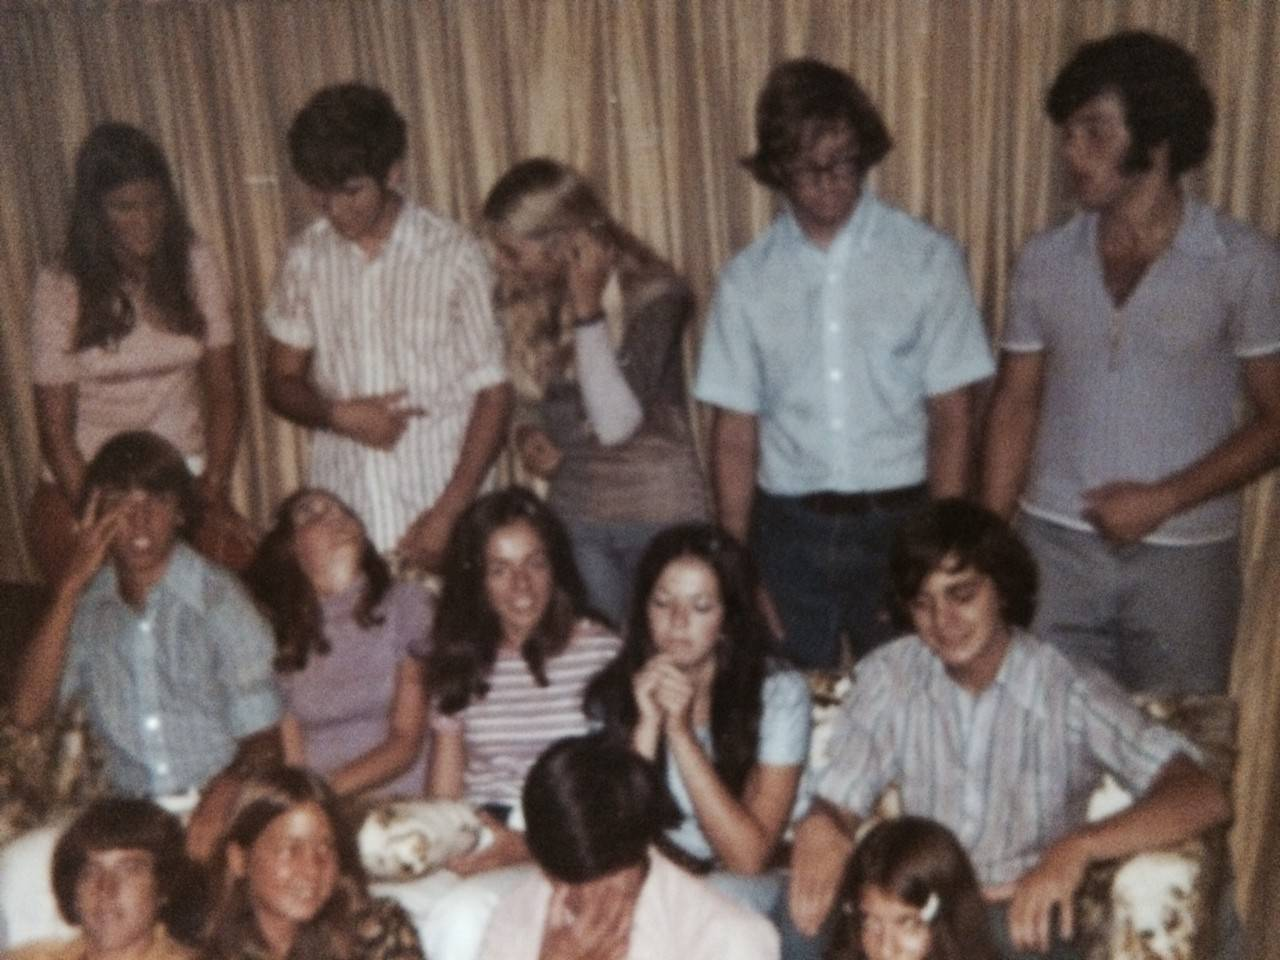 The photo 2 was just a large group of very close friends getting together at someone's house. This group was a close knit group, almost all of them associated with a sport or Rhythmettes (pompon girls), and just had fun without drugs or alcohol.